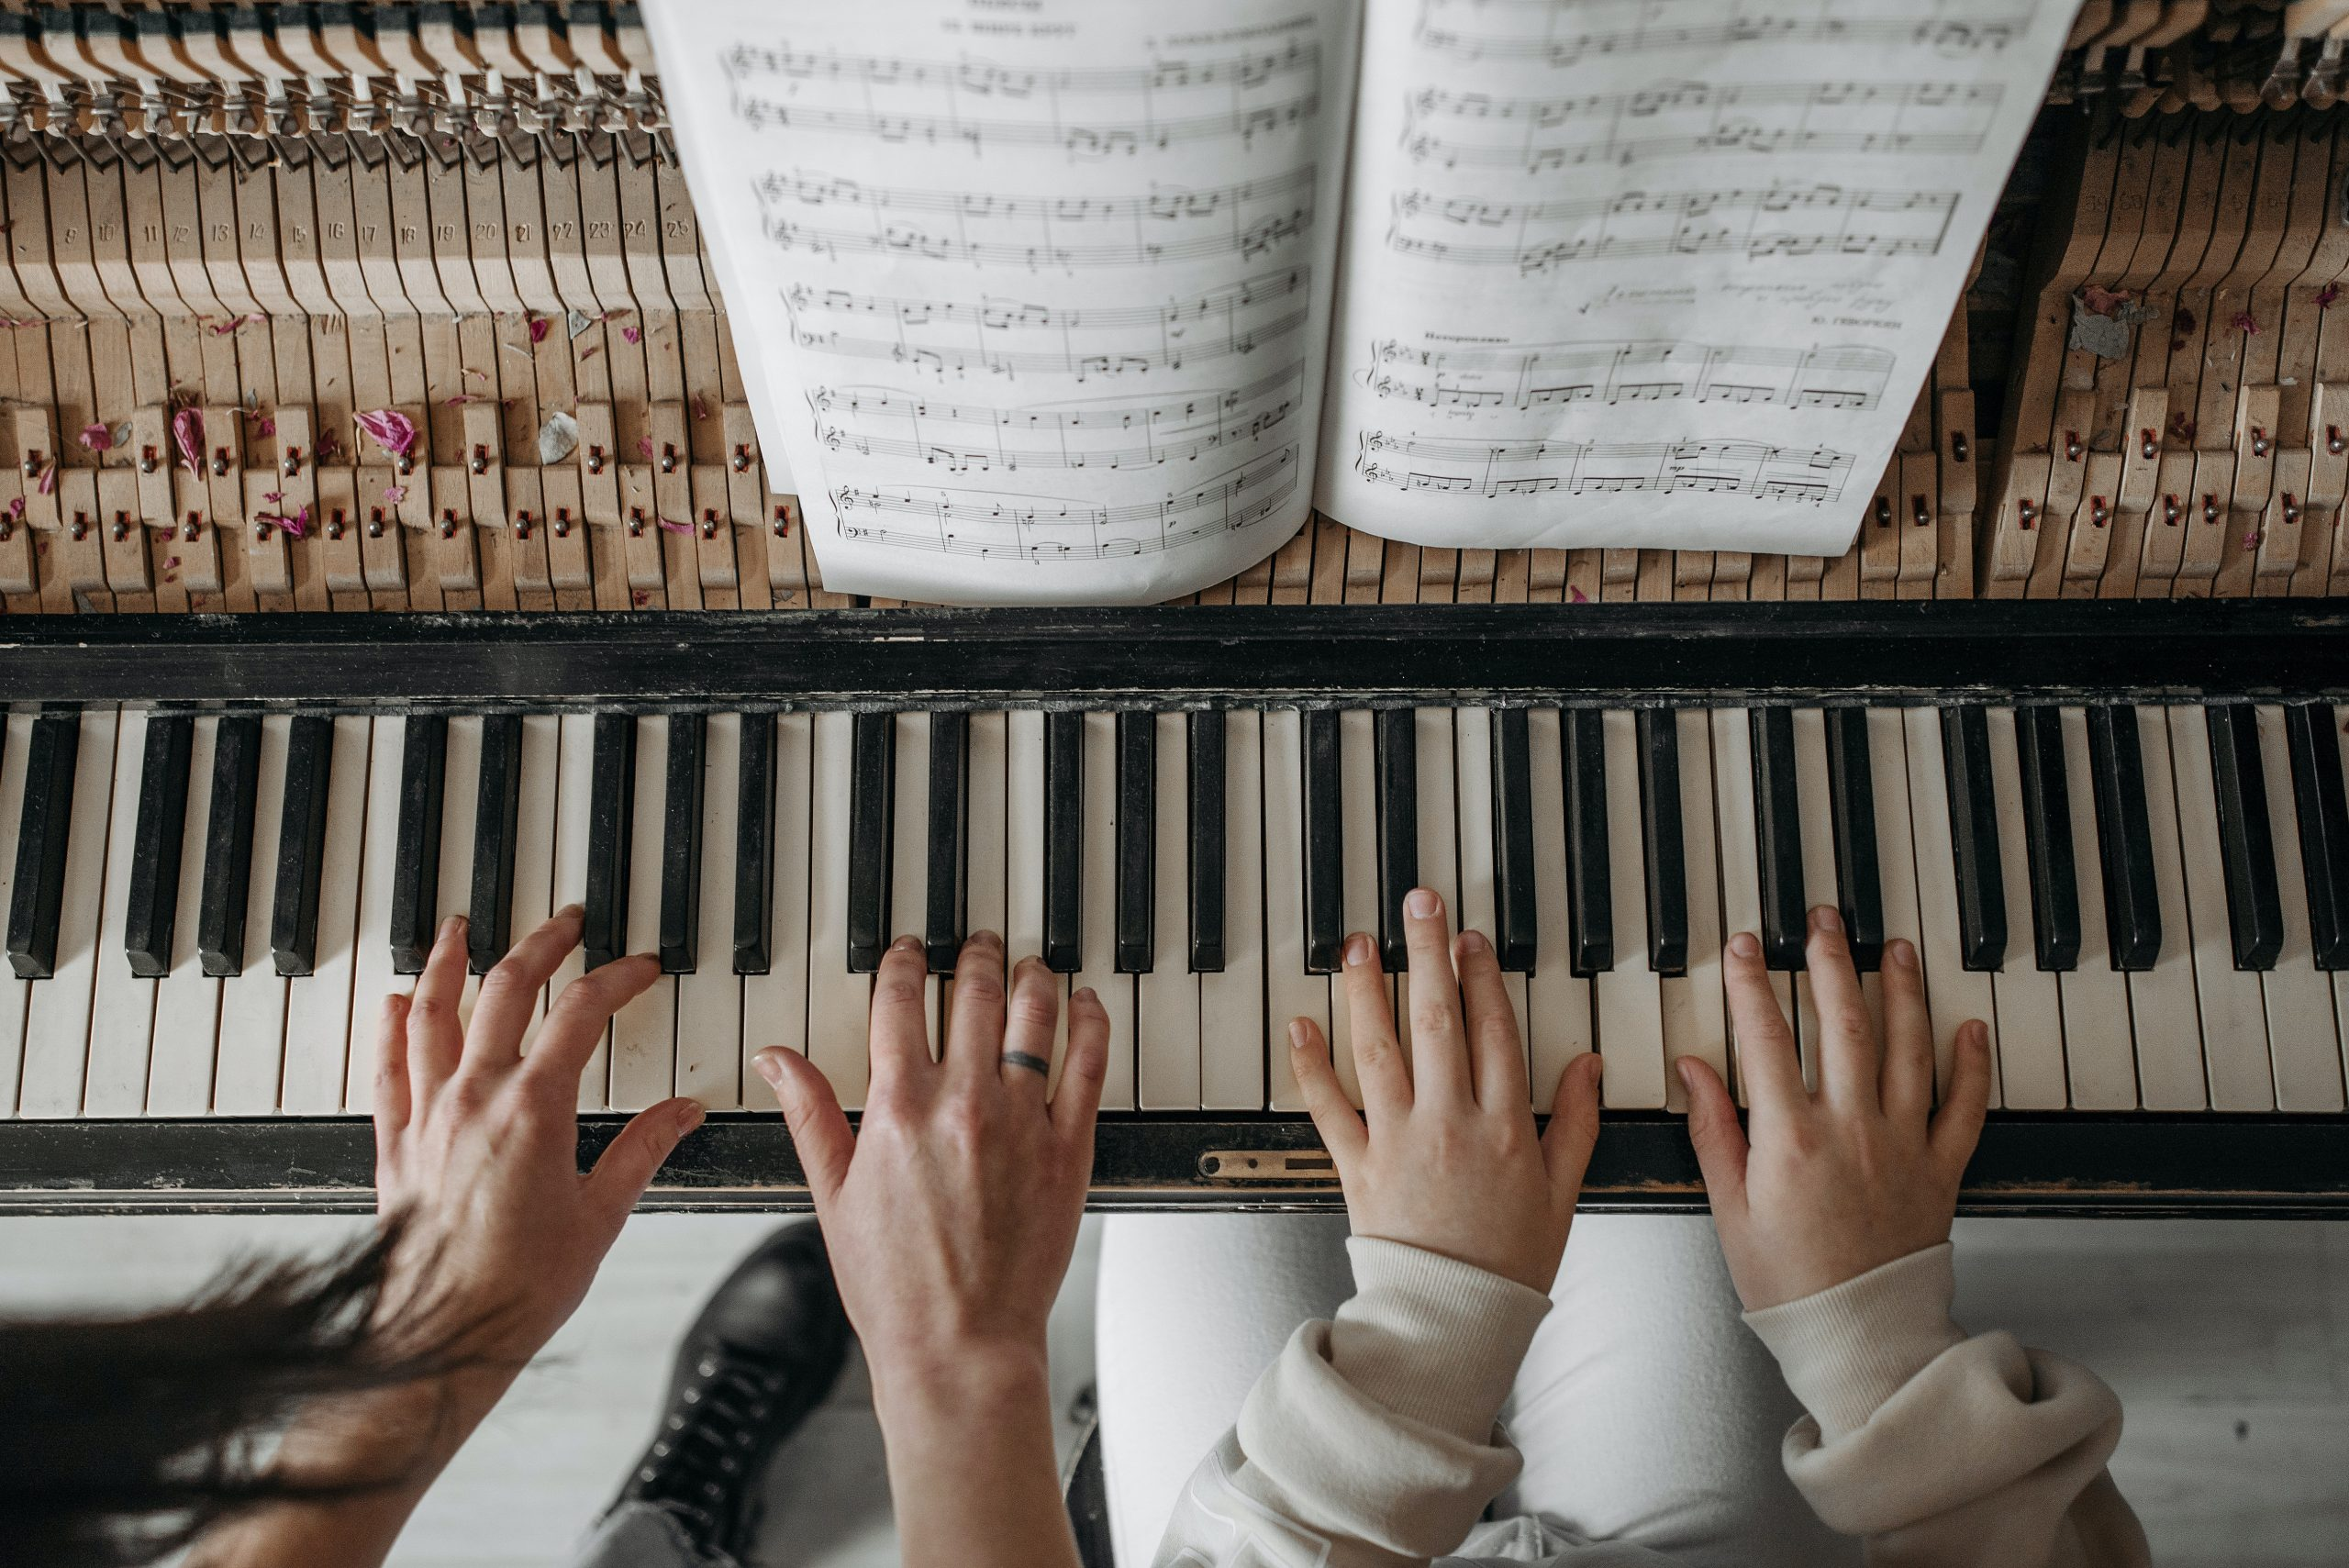 Music teacher's hands and student's hands playing piano